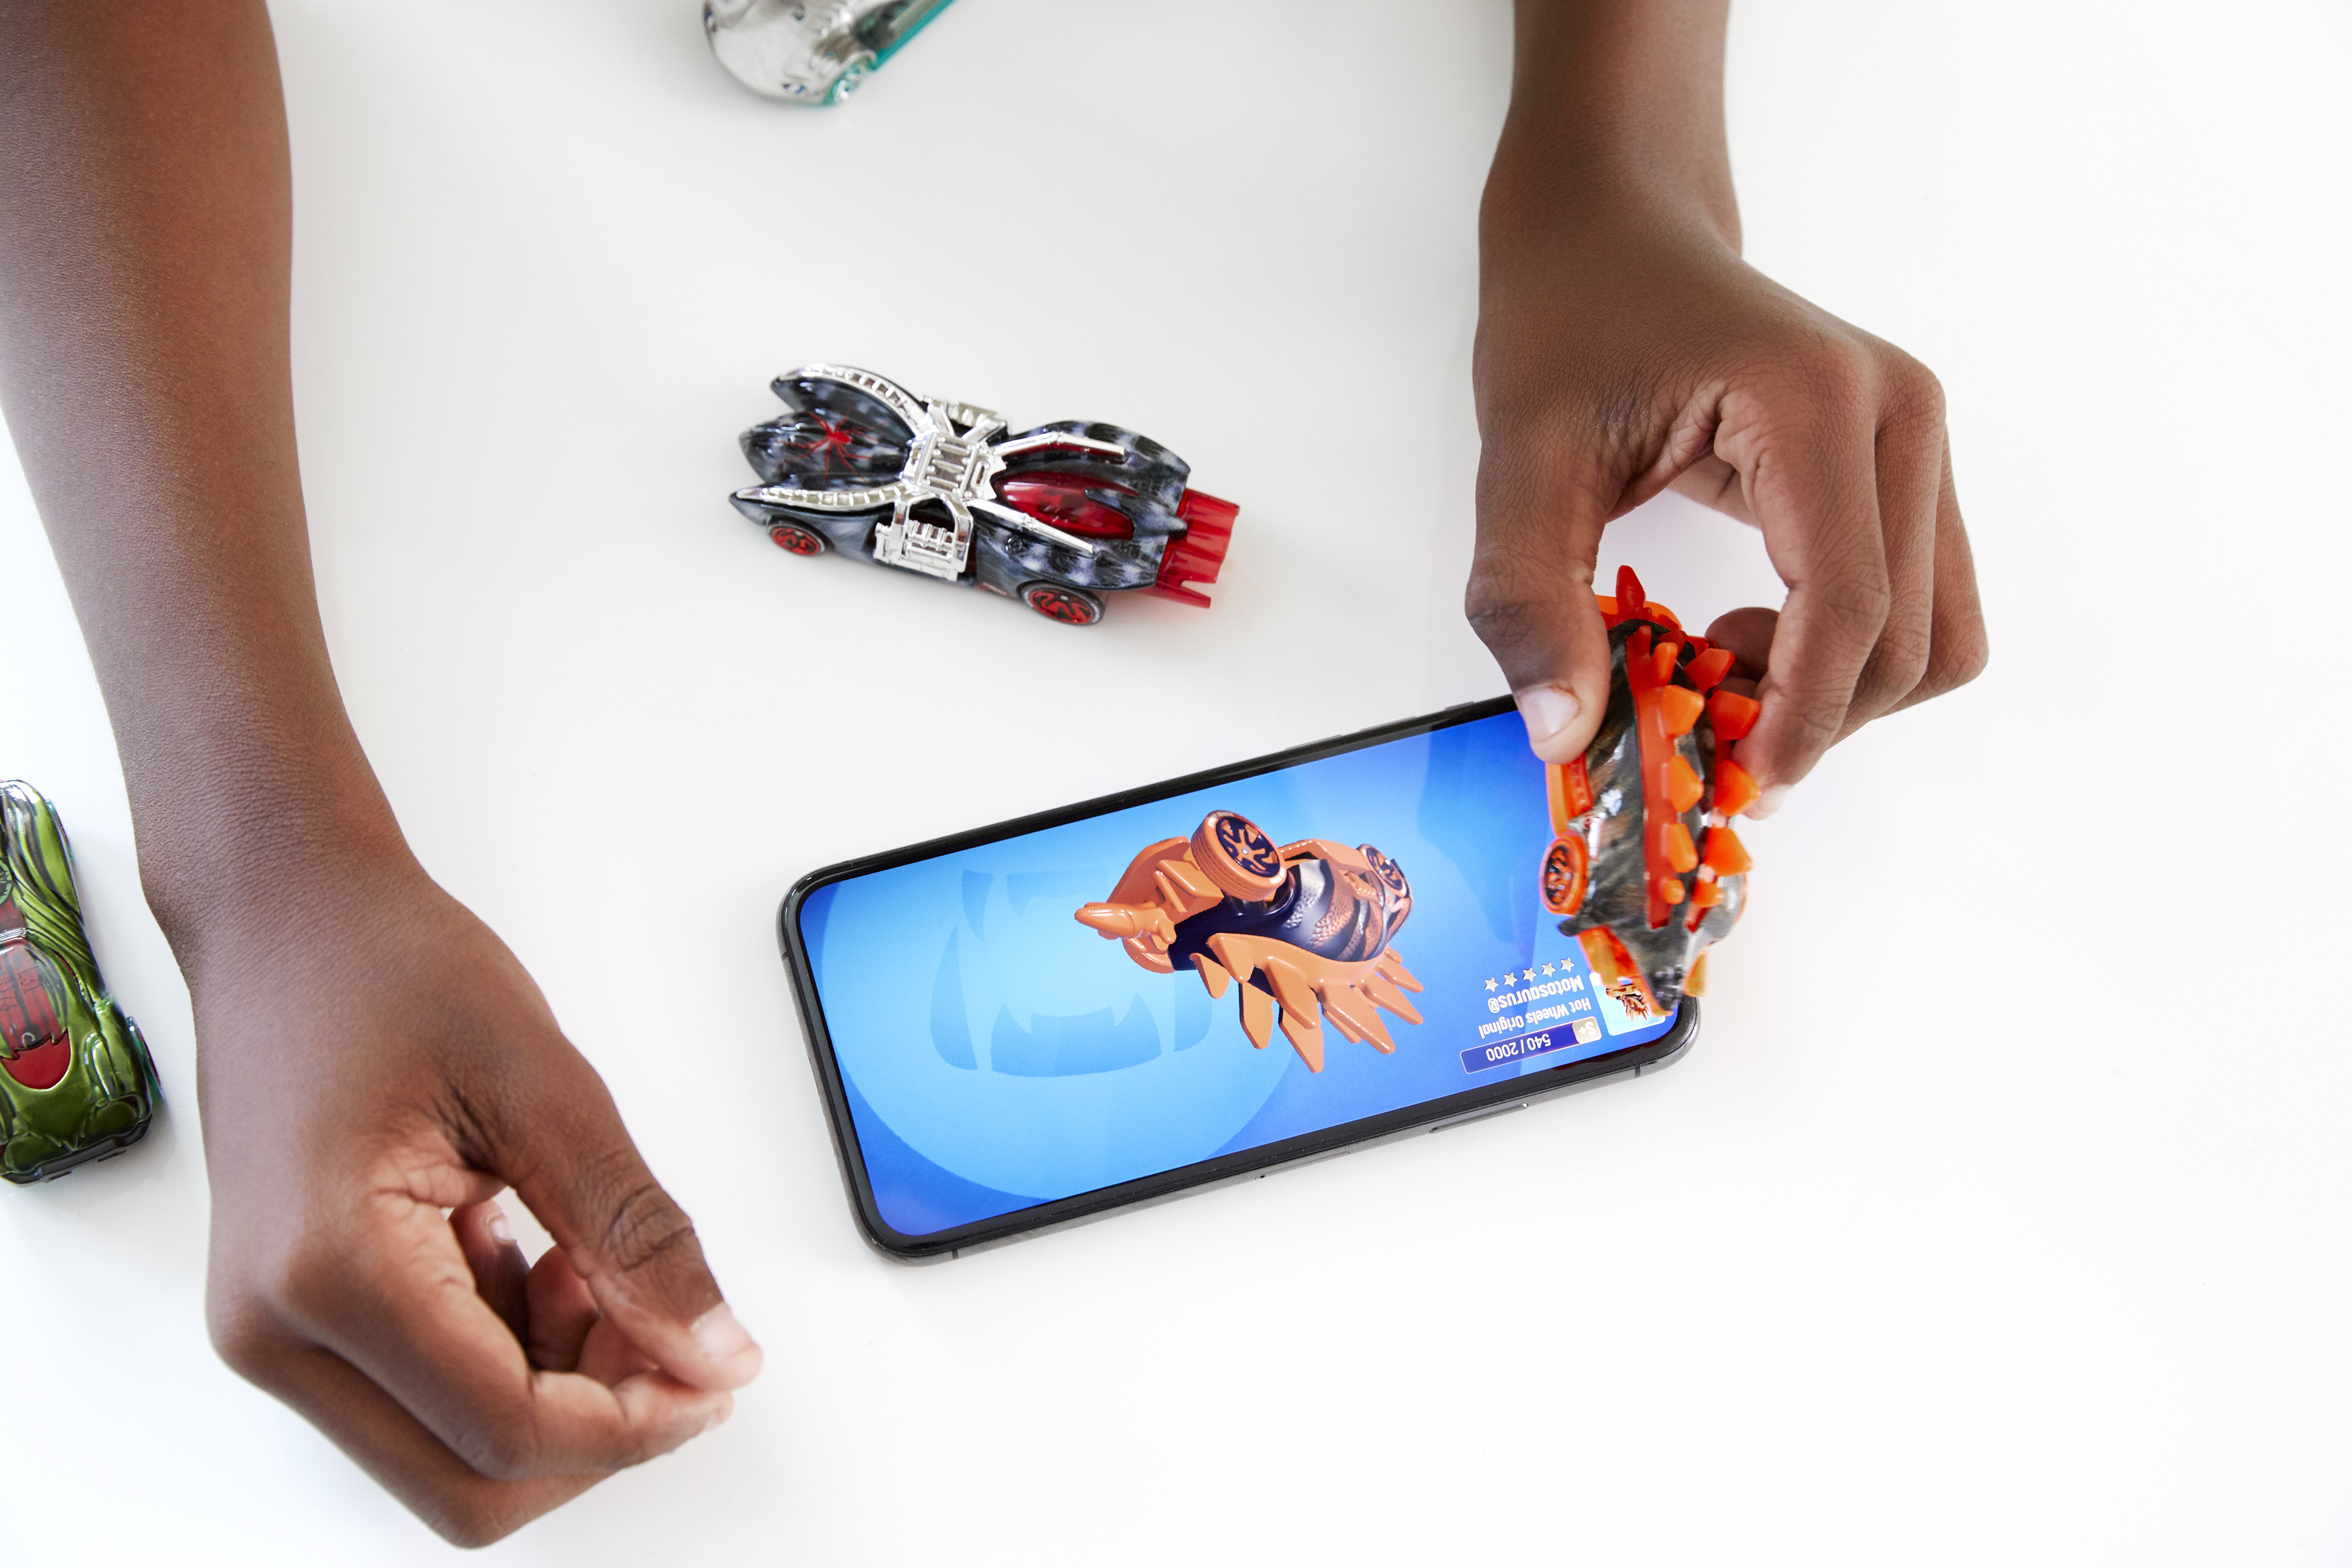 Hot Wheels Got a Major Digital Upgrade That Lets You Blend Video Games with Real Life